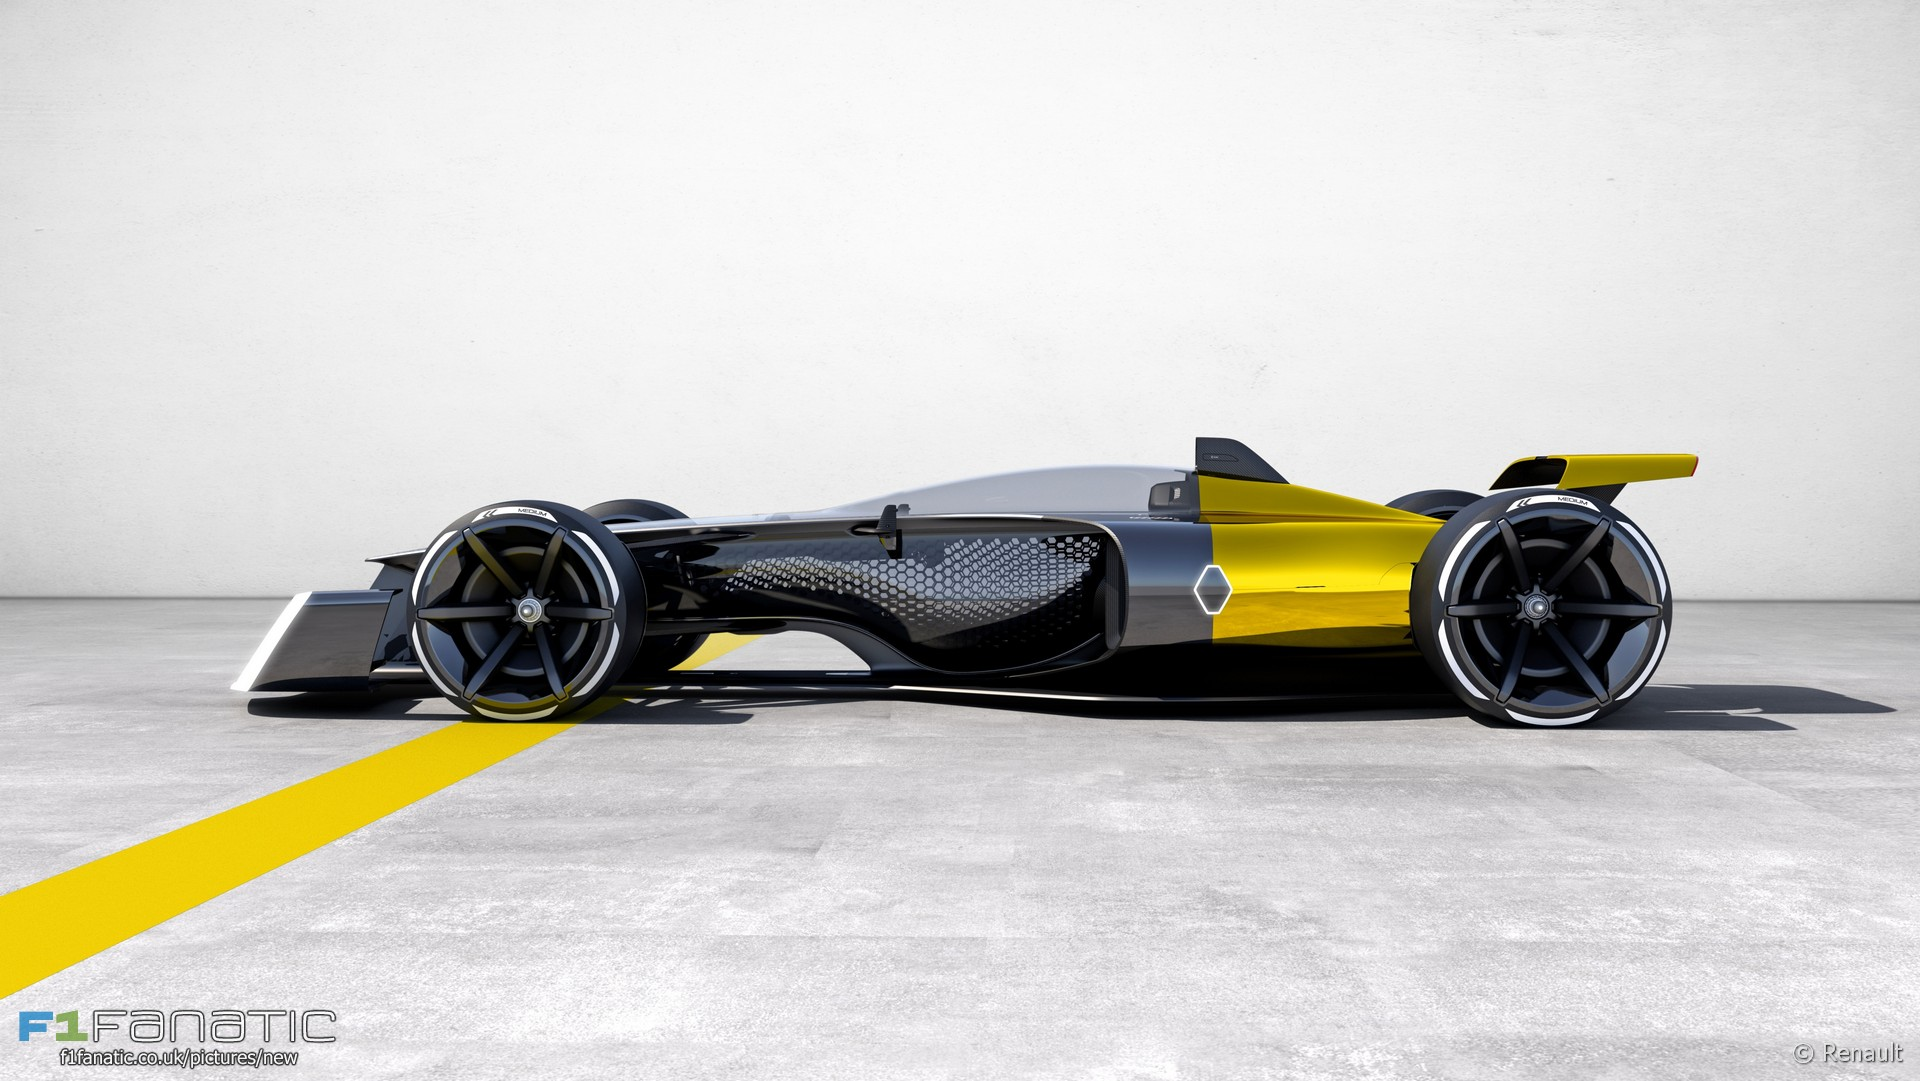 renault rs 2027 vision f1 car concept f1 fanatic. Black Bedroom Furniture Sets. Home Design Ideas